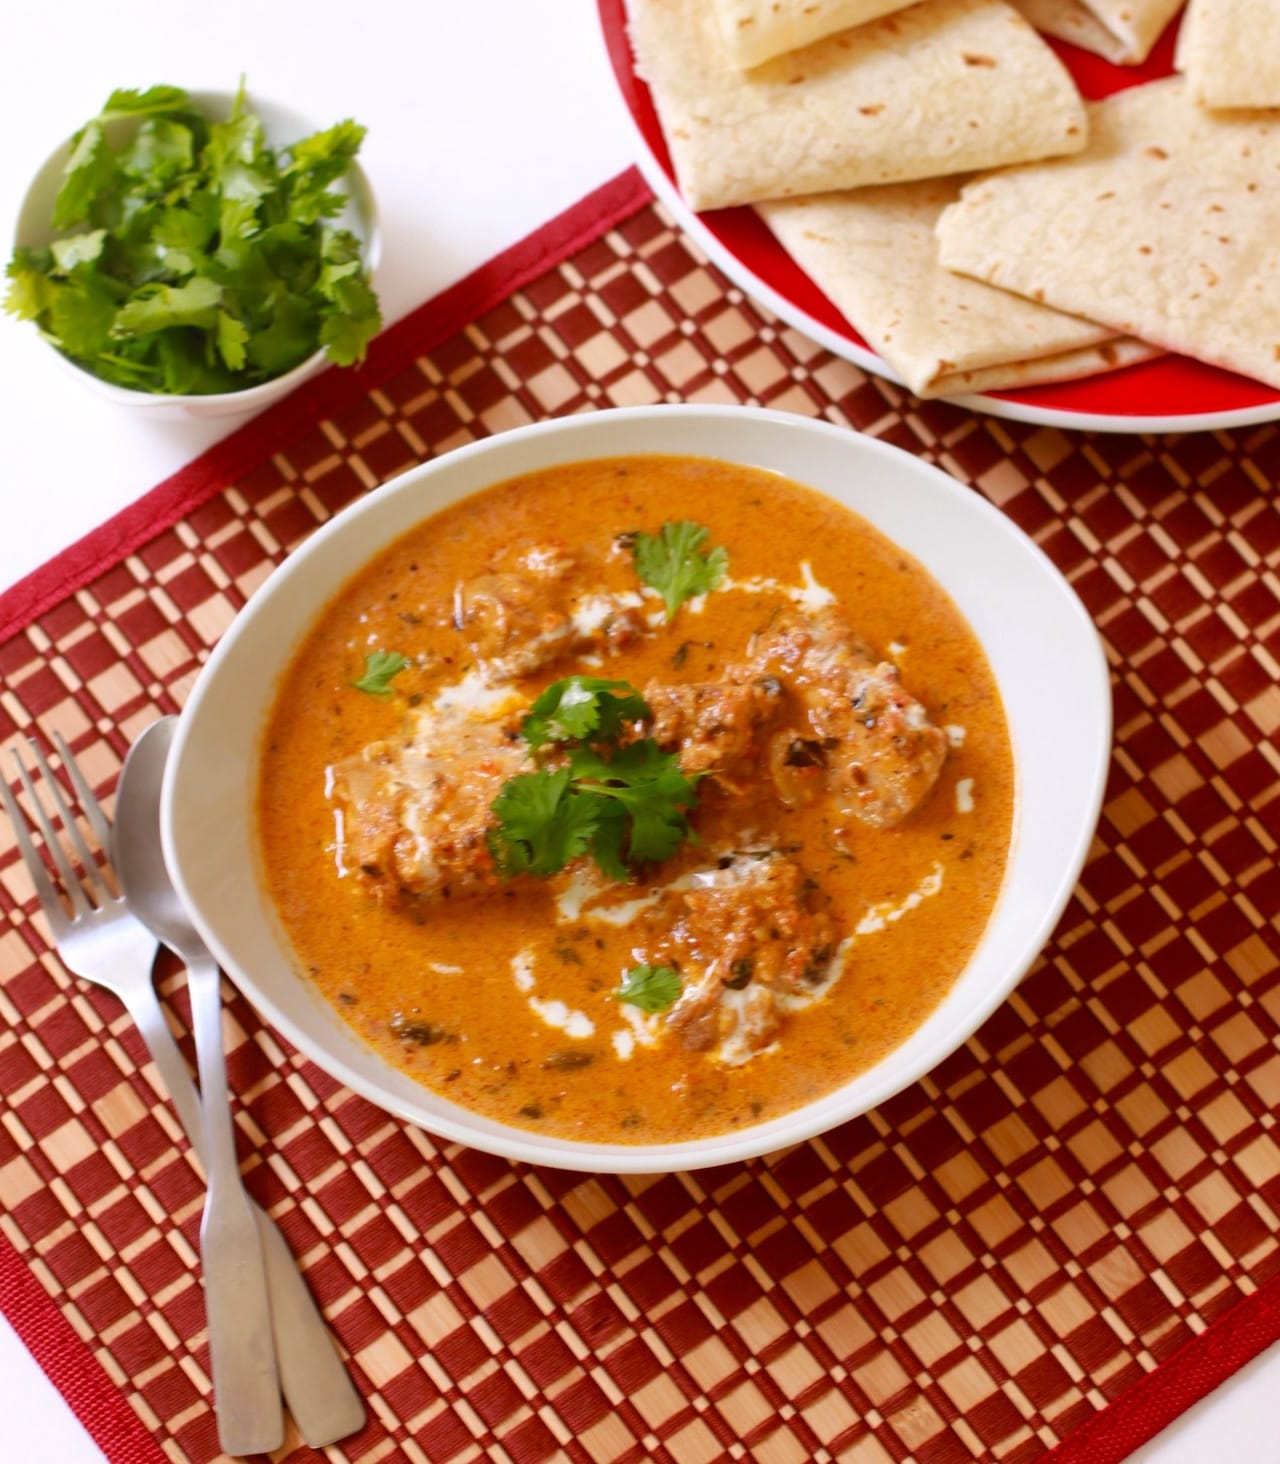 Butter chickenmurgh makhani playful cooking origin forumfinder Image collections